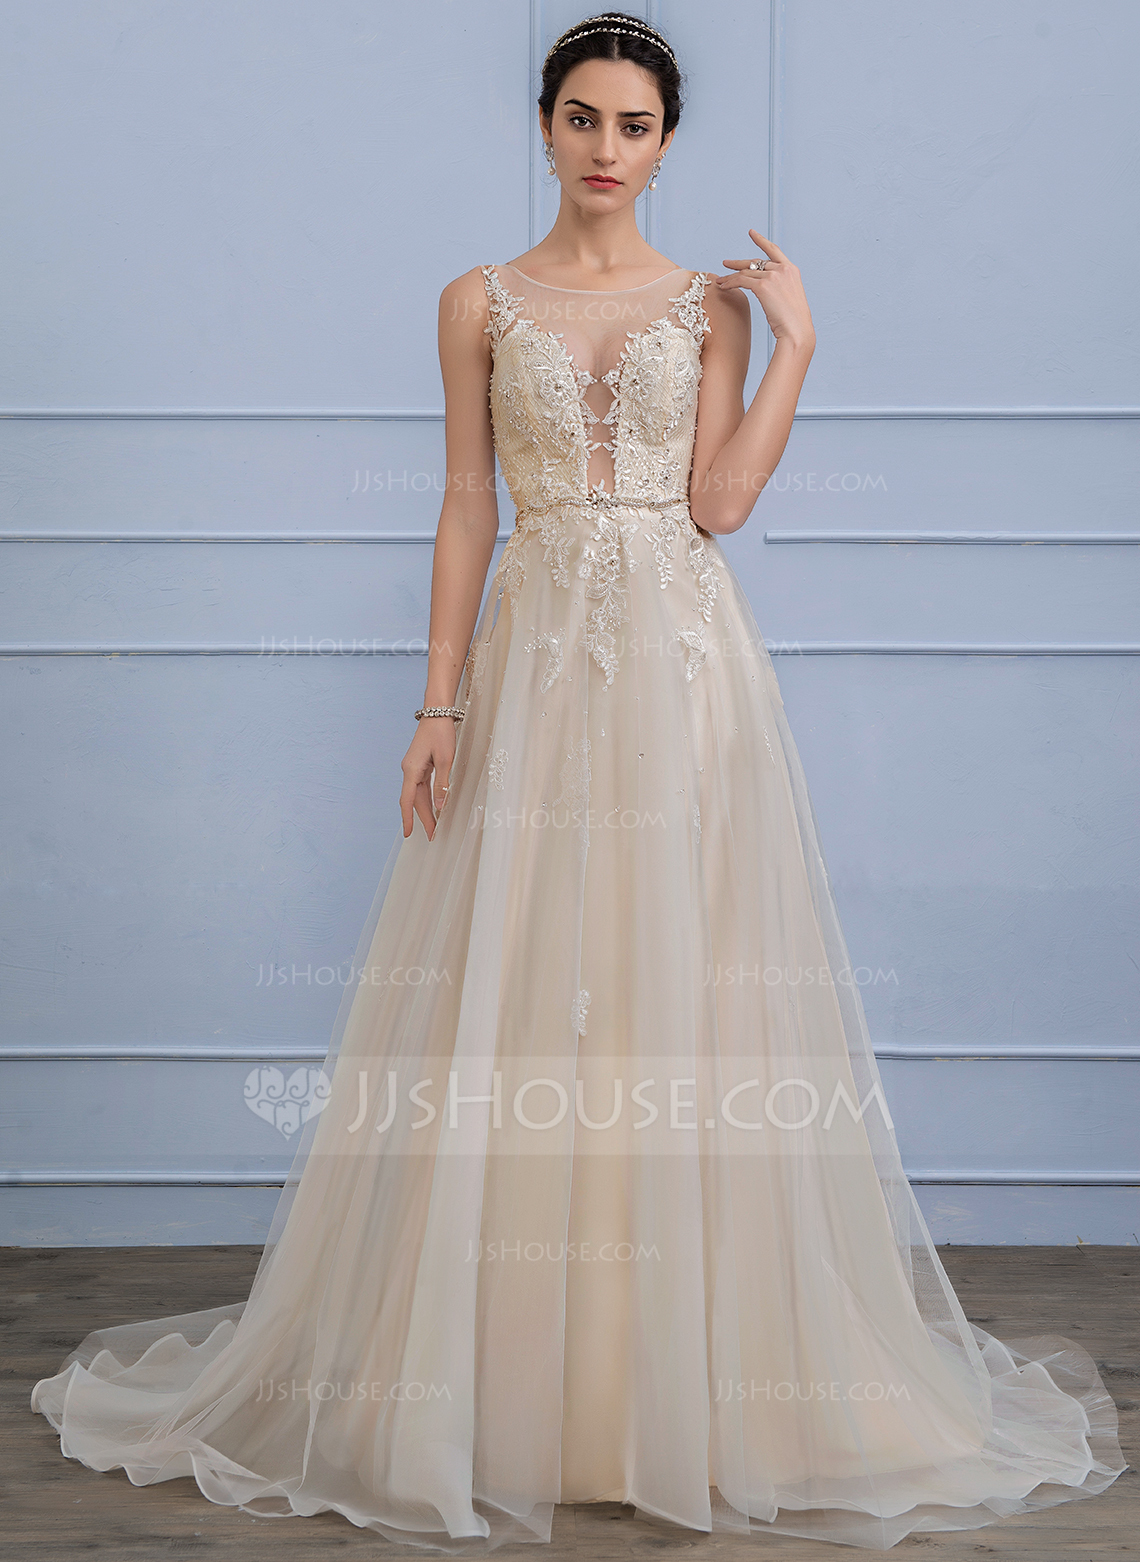 Wedding Dresses In Color p color wedding dresses A Line Princess Scoop Neck Sweep Train Tulle Lace Wedding Dress With Beading Sequins